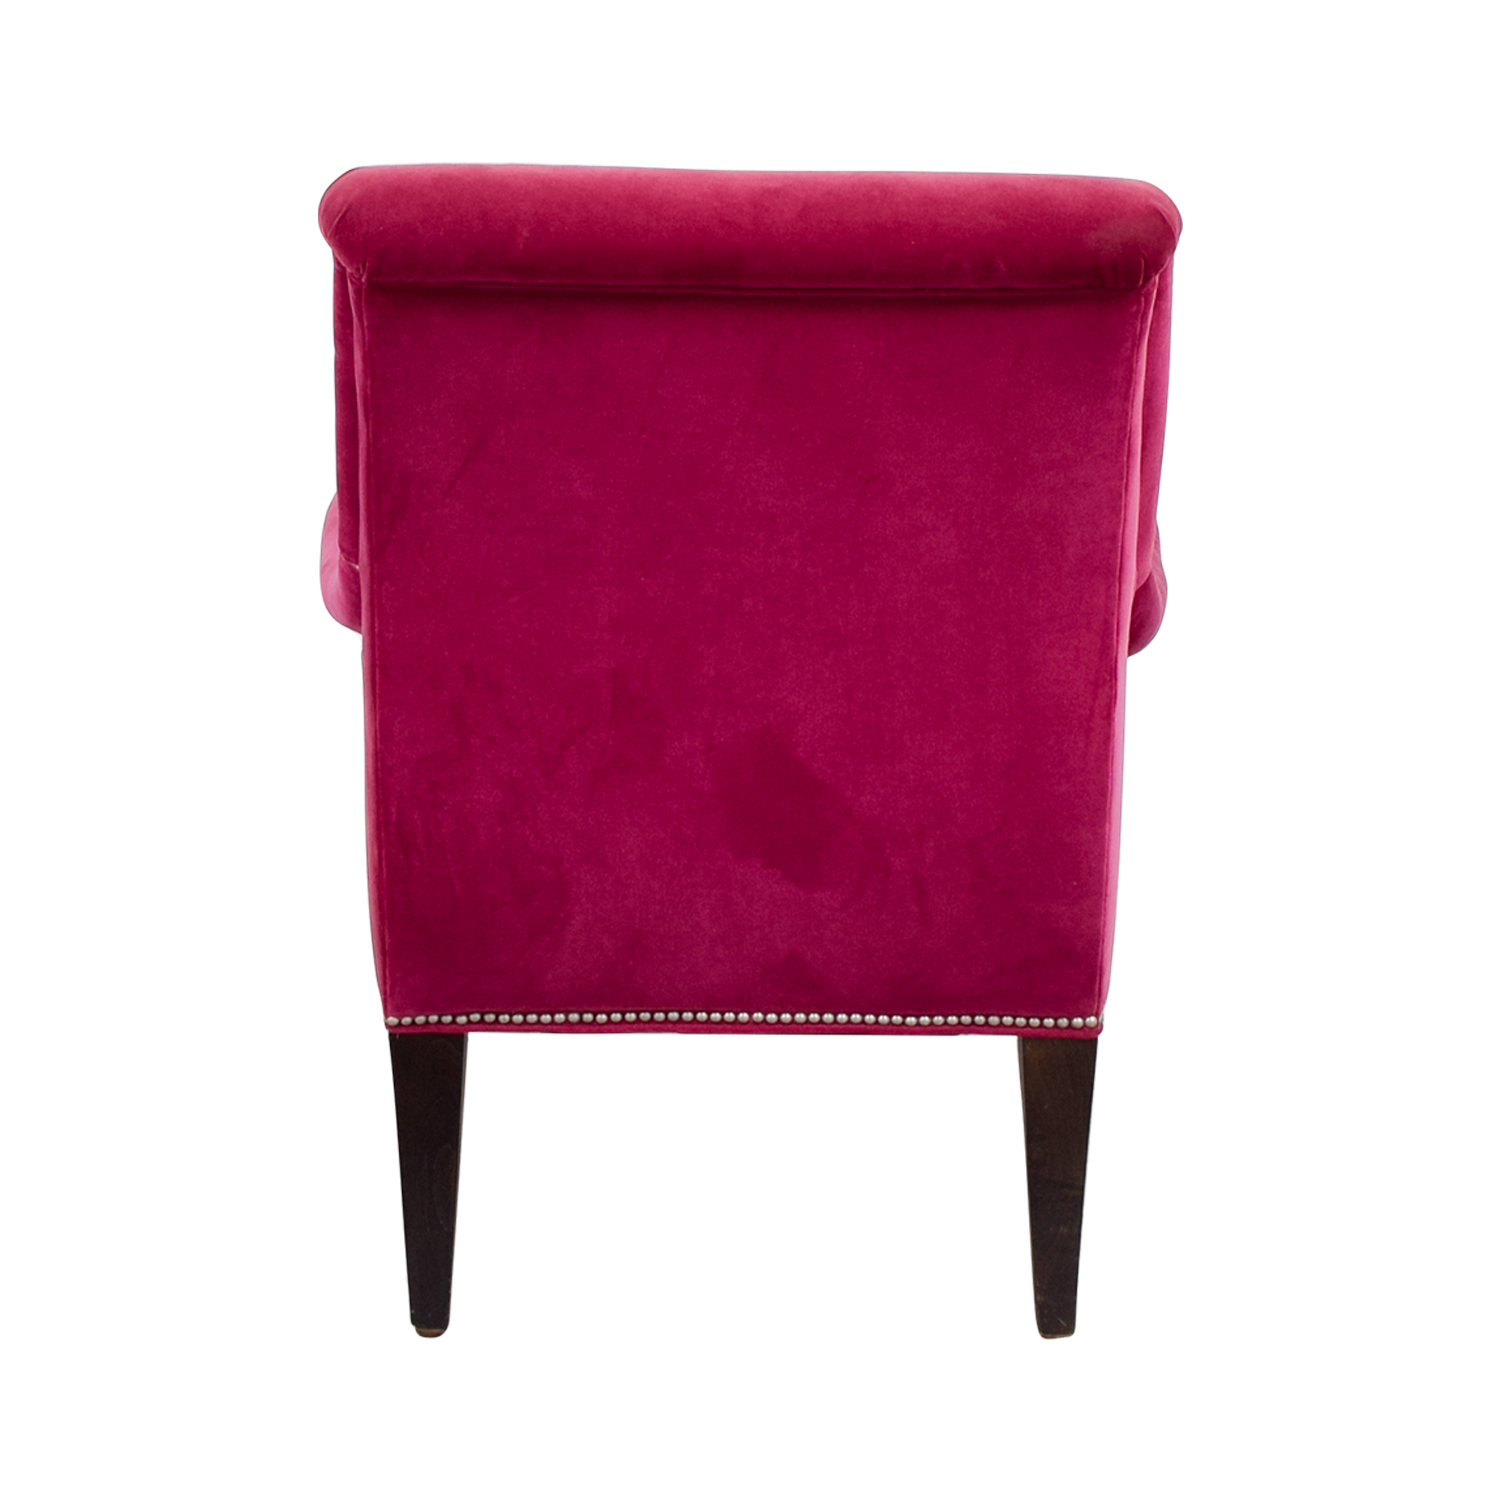 Crate & Barrel Crate & Barrel Pink Velvet Chair Accent Chairs